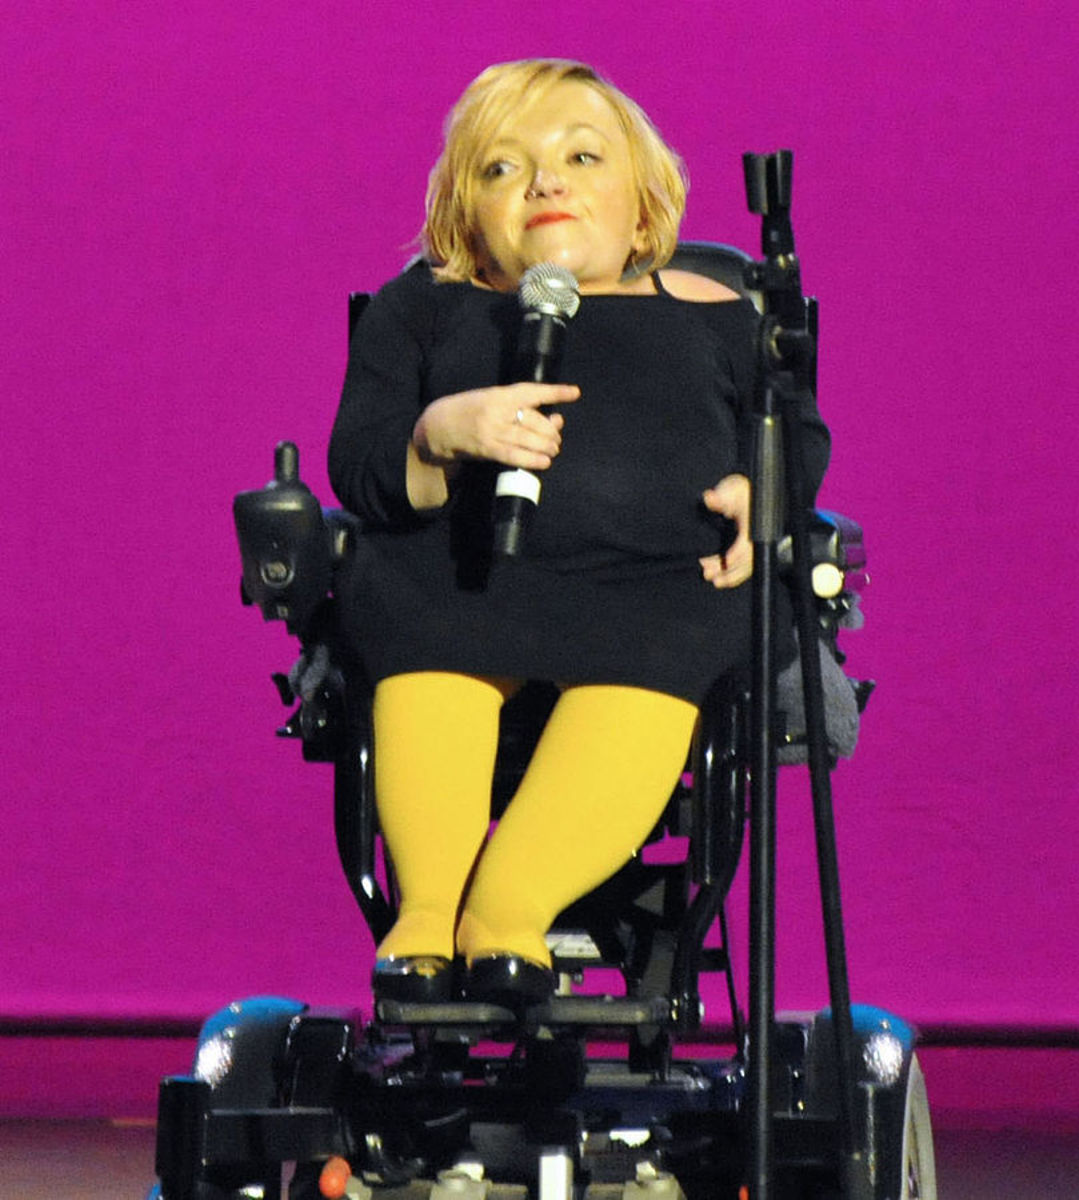 Disability advocate Stella Young